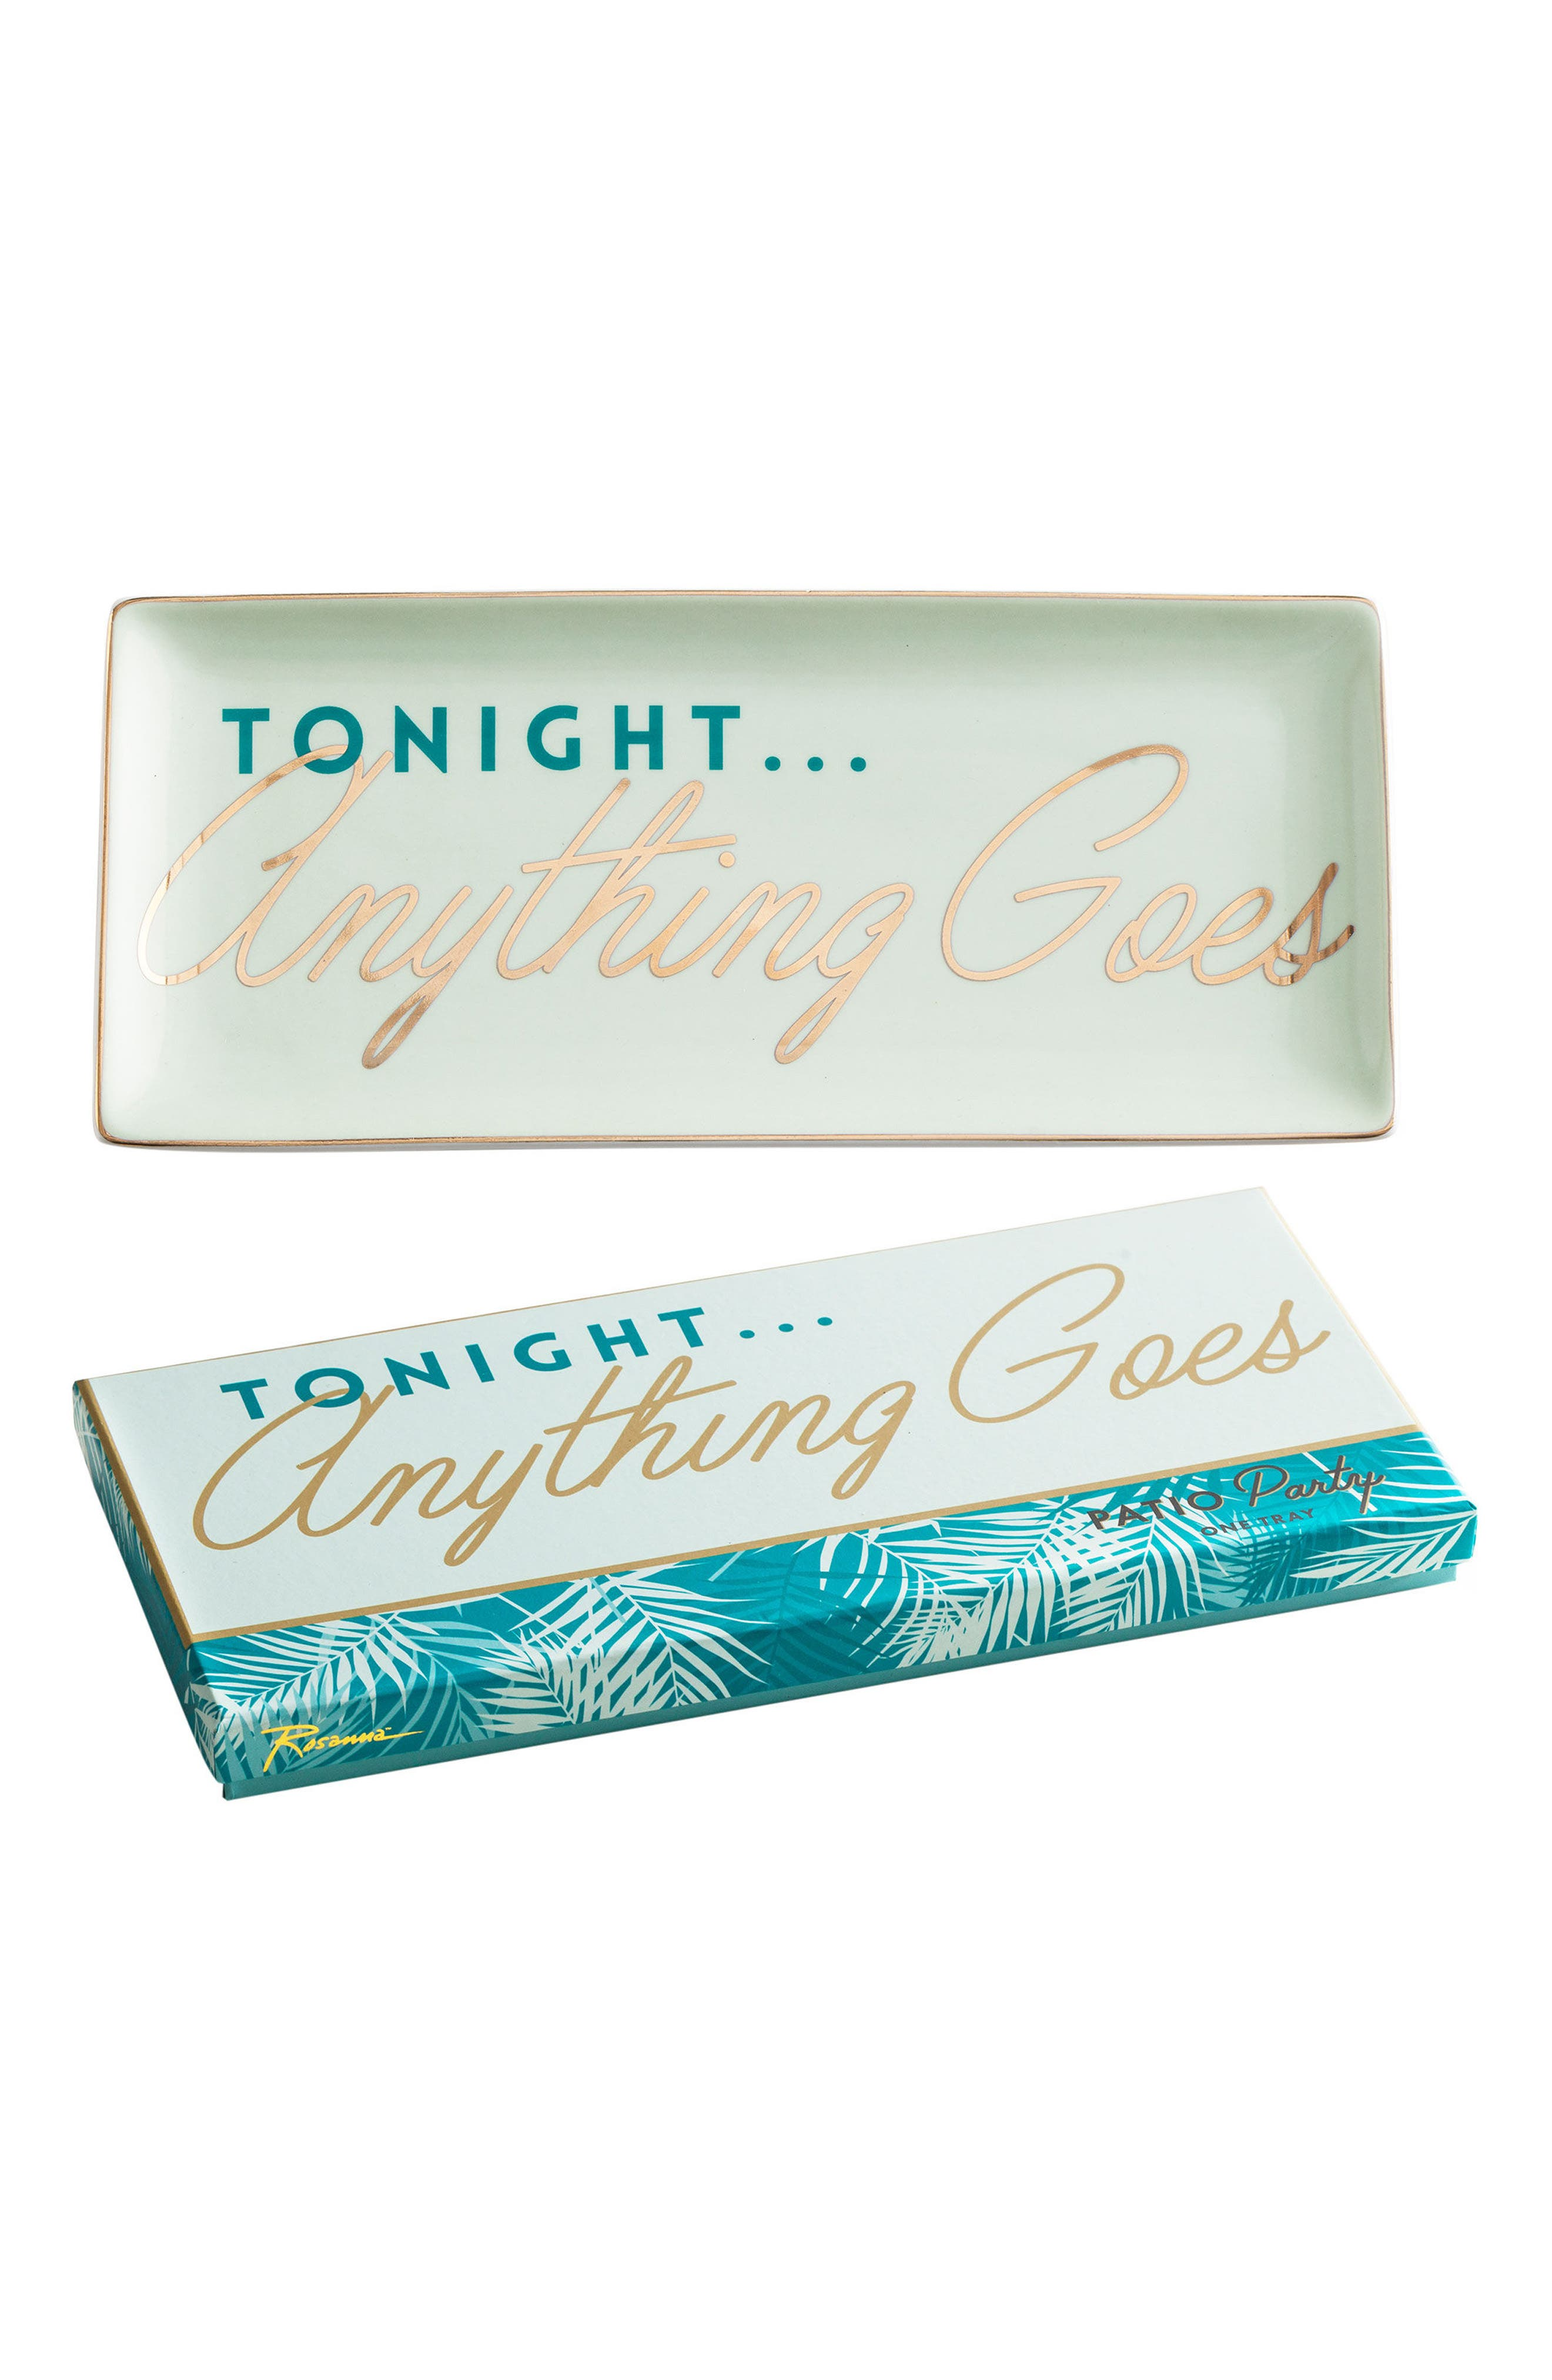 Anything Goes Porcelain Trinket Tray,                             Main thumbnail 1, color,                             100